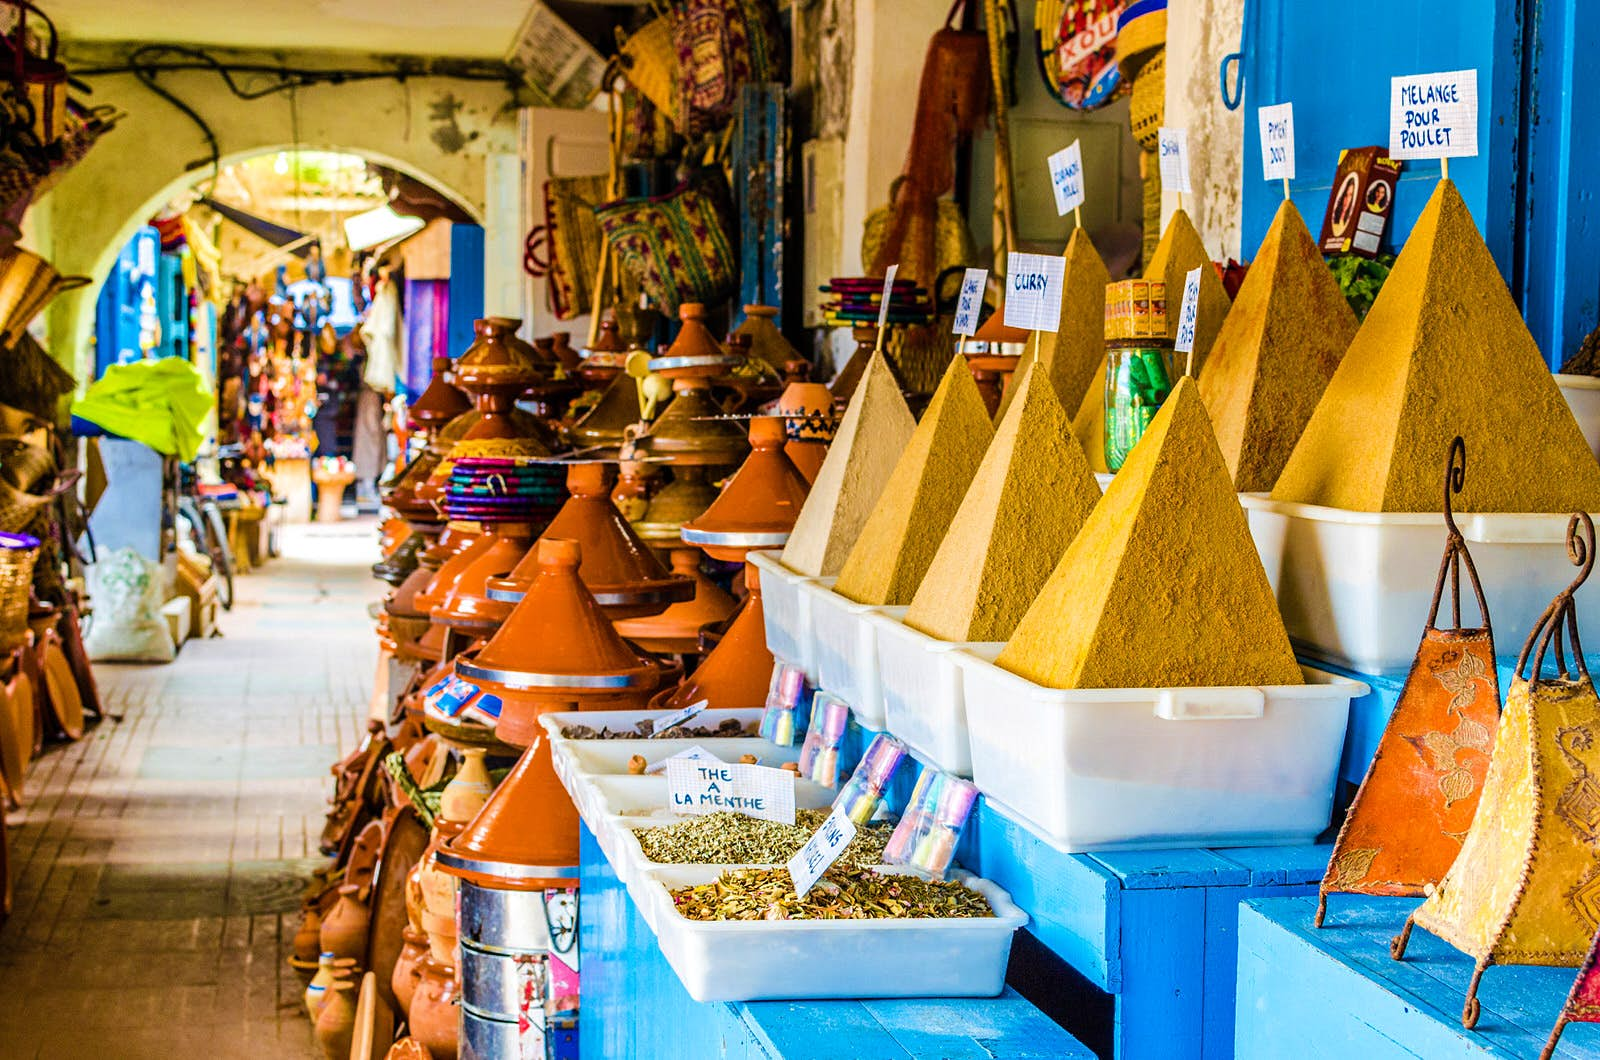 Pyramids of spices, Essaouira, Morocco. Image by Federica Gentile / Getty Images